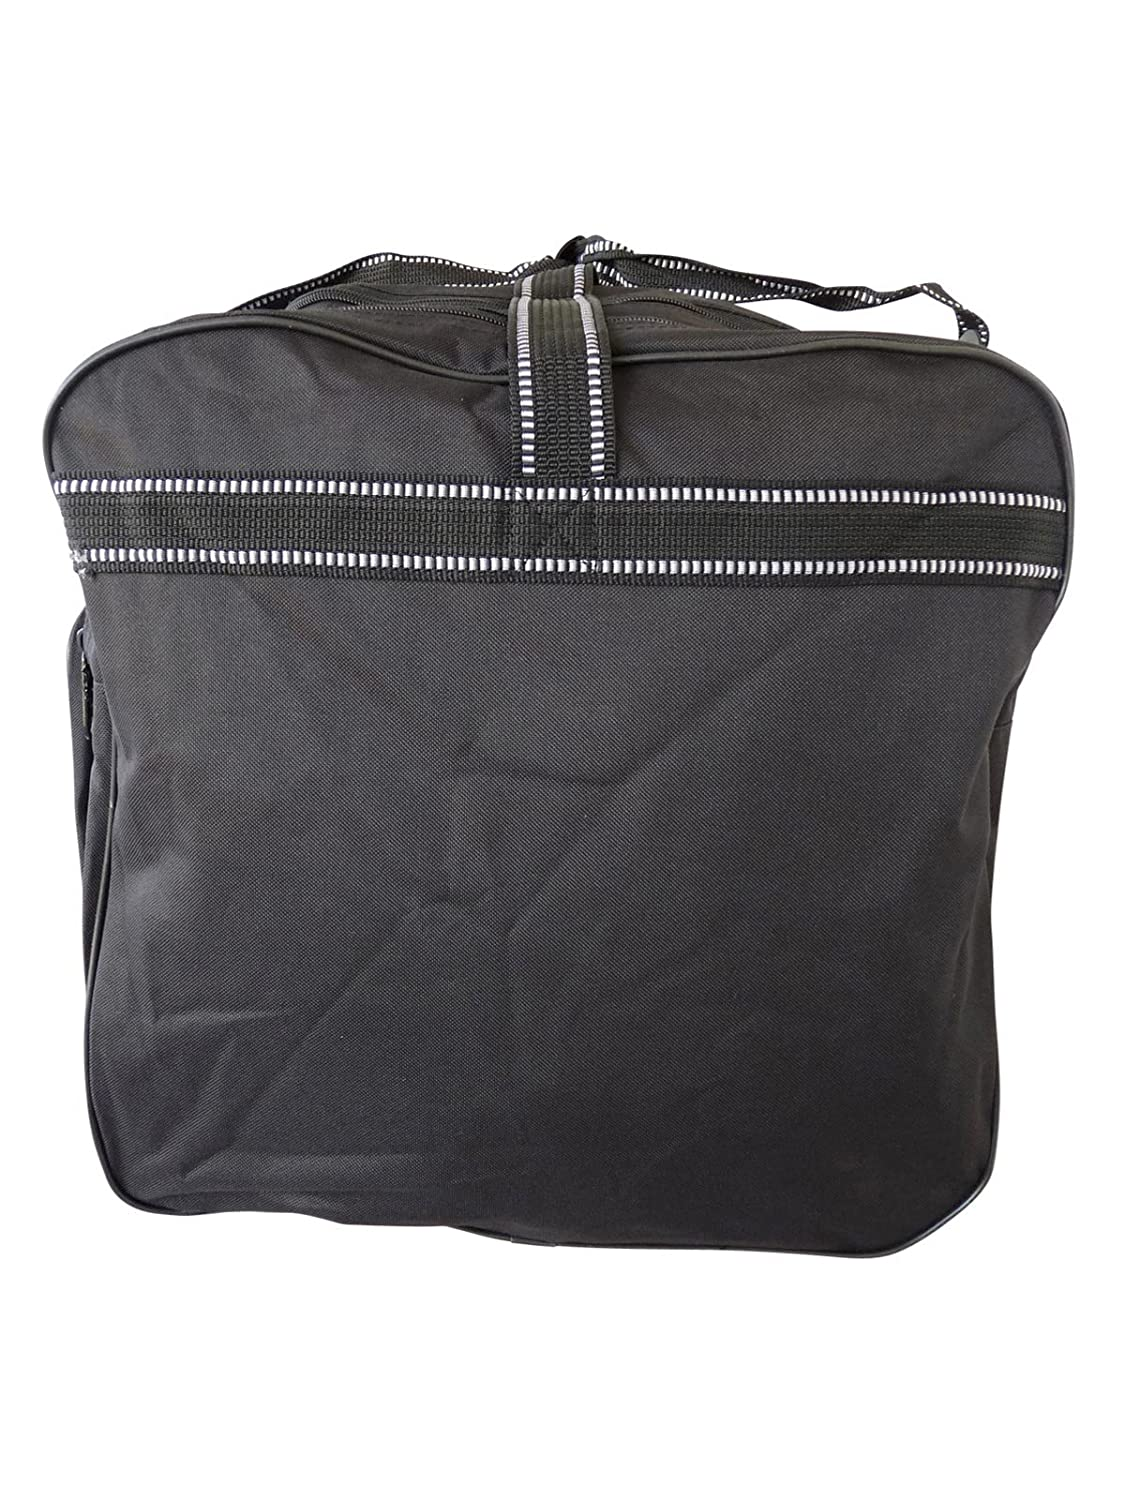 Extra Large XL Big Holdall - Suitcase Size Travel Bag - 110 Litre Very  Large Black Luggage Holdalls - Huge Space - Cargo Bags For Storage 8524cbddd84ea